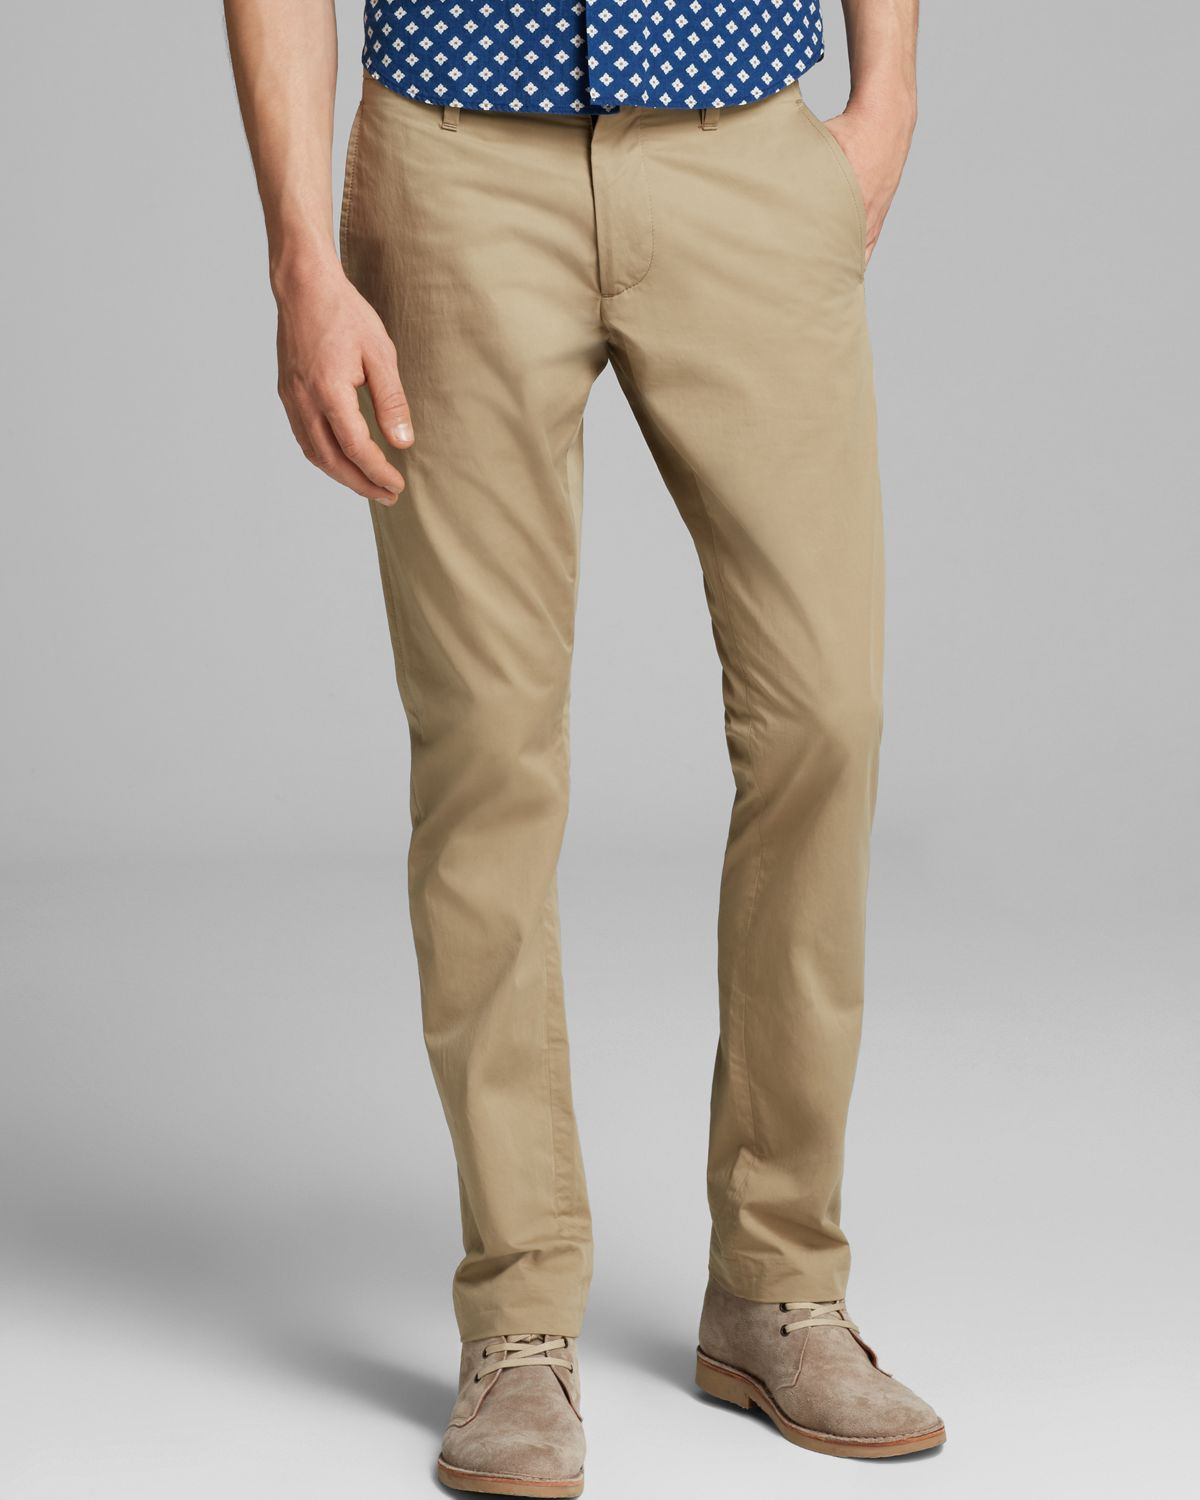 Marc by marc jacobs California Cotton Pants Slim Fit in